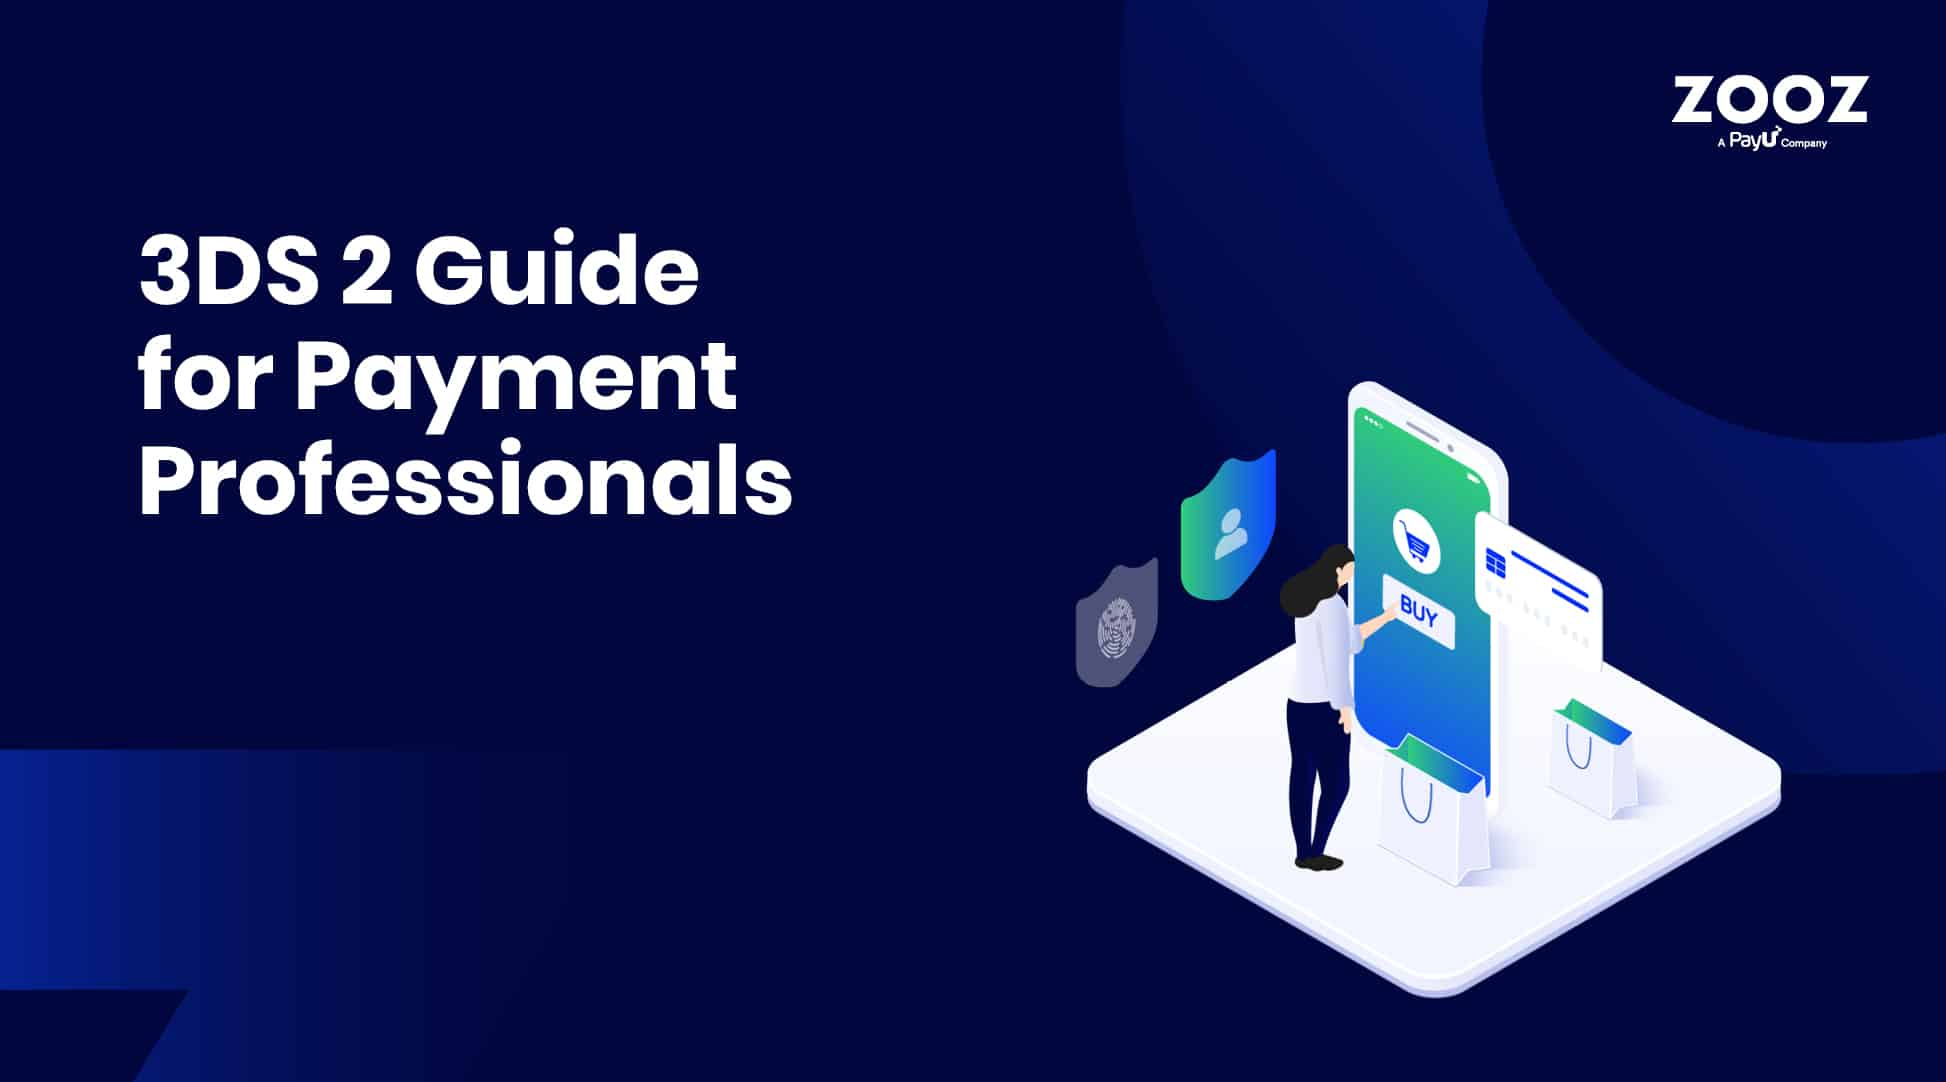 3ds 2 guide for payment professionals